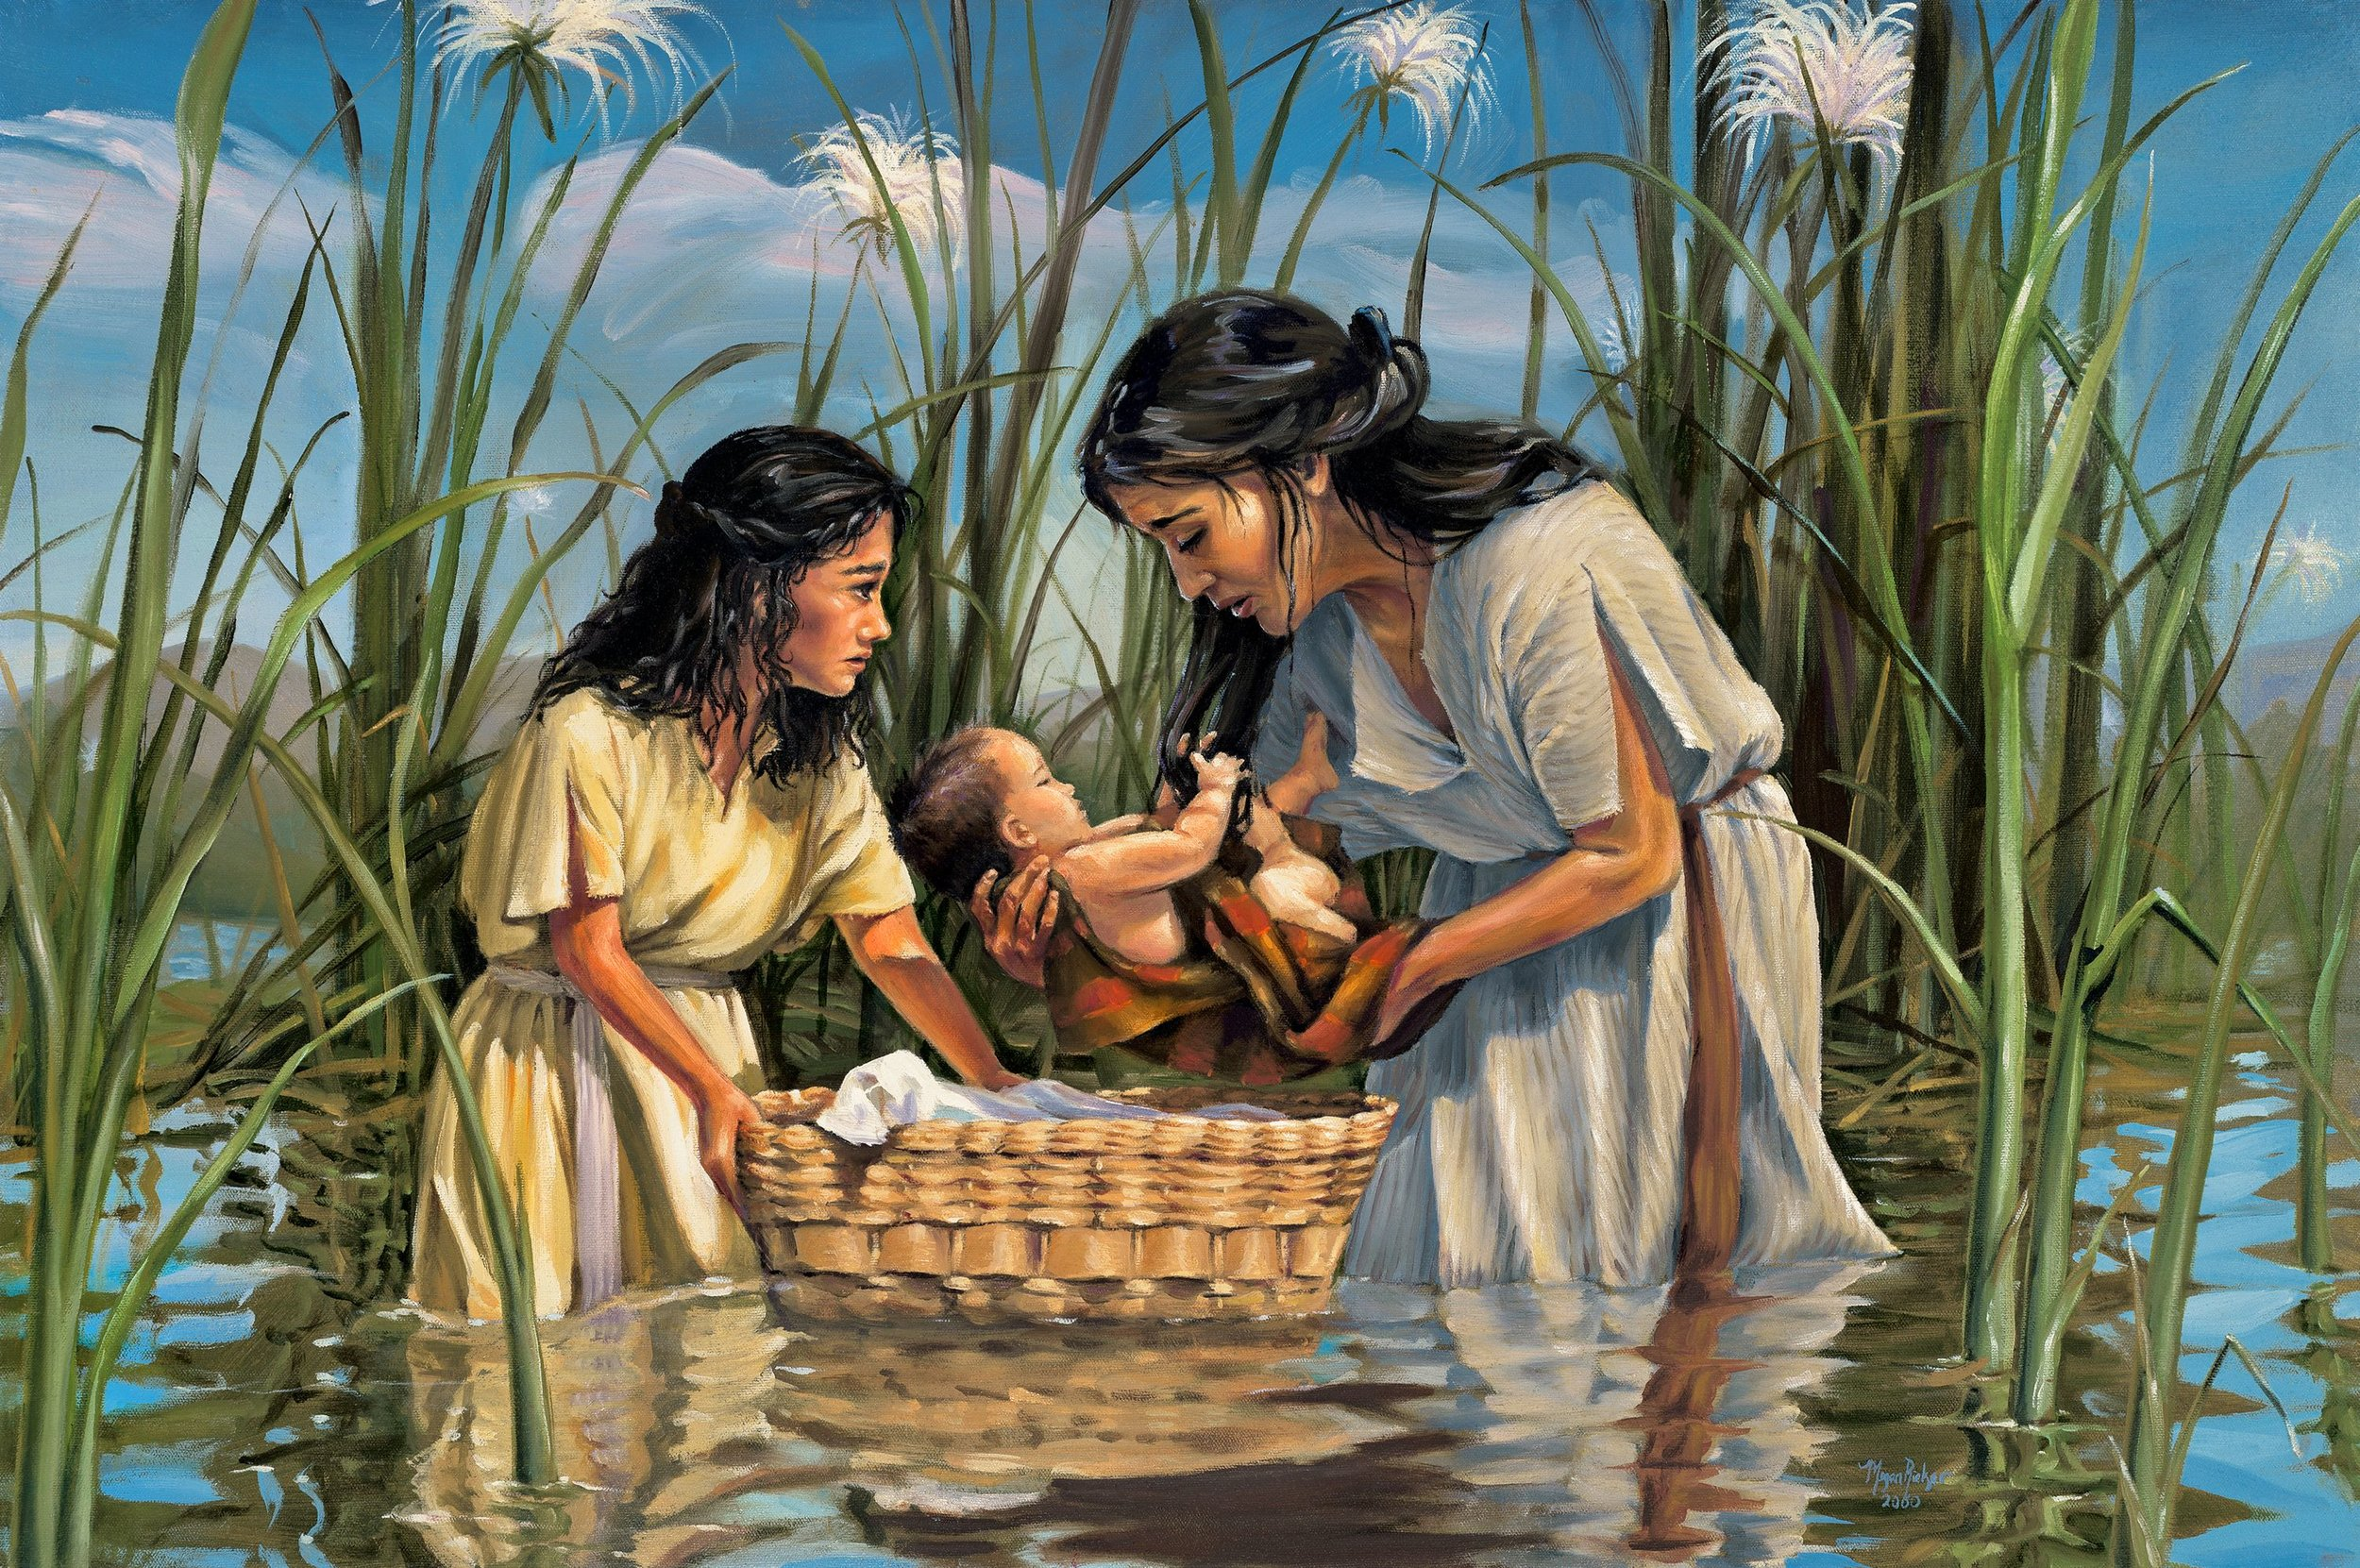 Moses' mother, miriam, placing him in a basket in the river nile to protect him from pharoah.